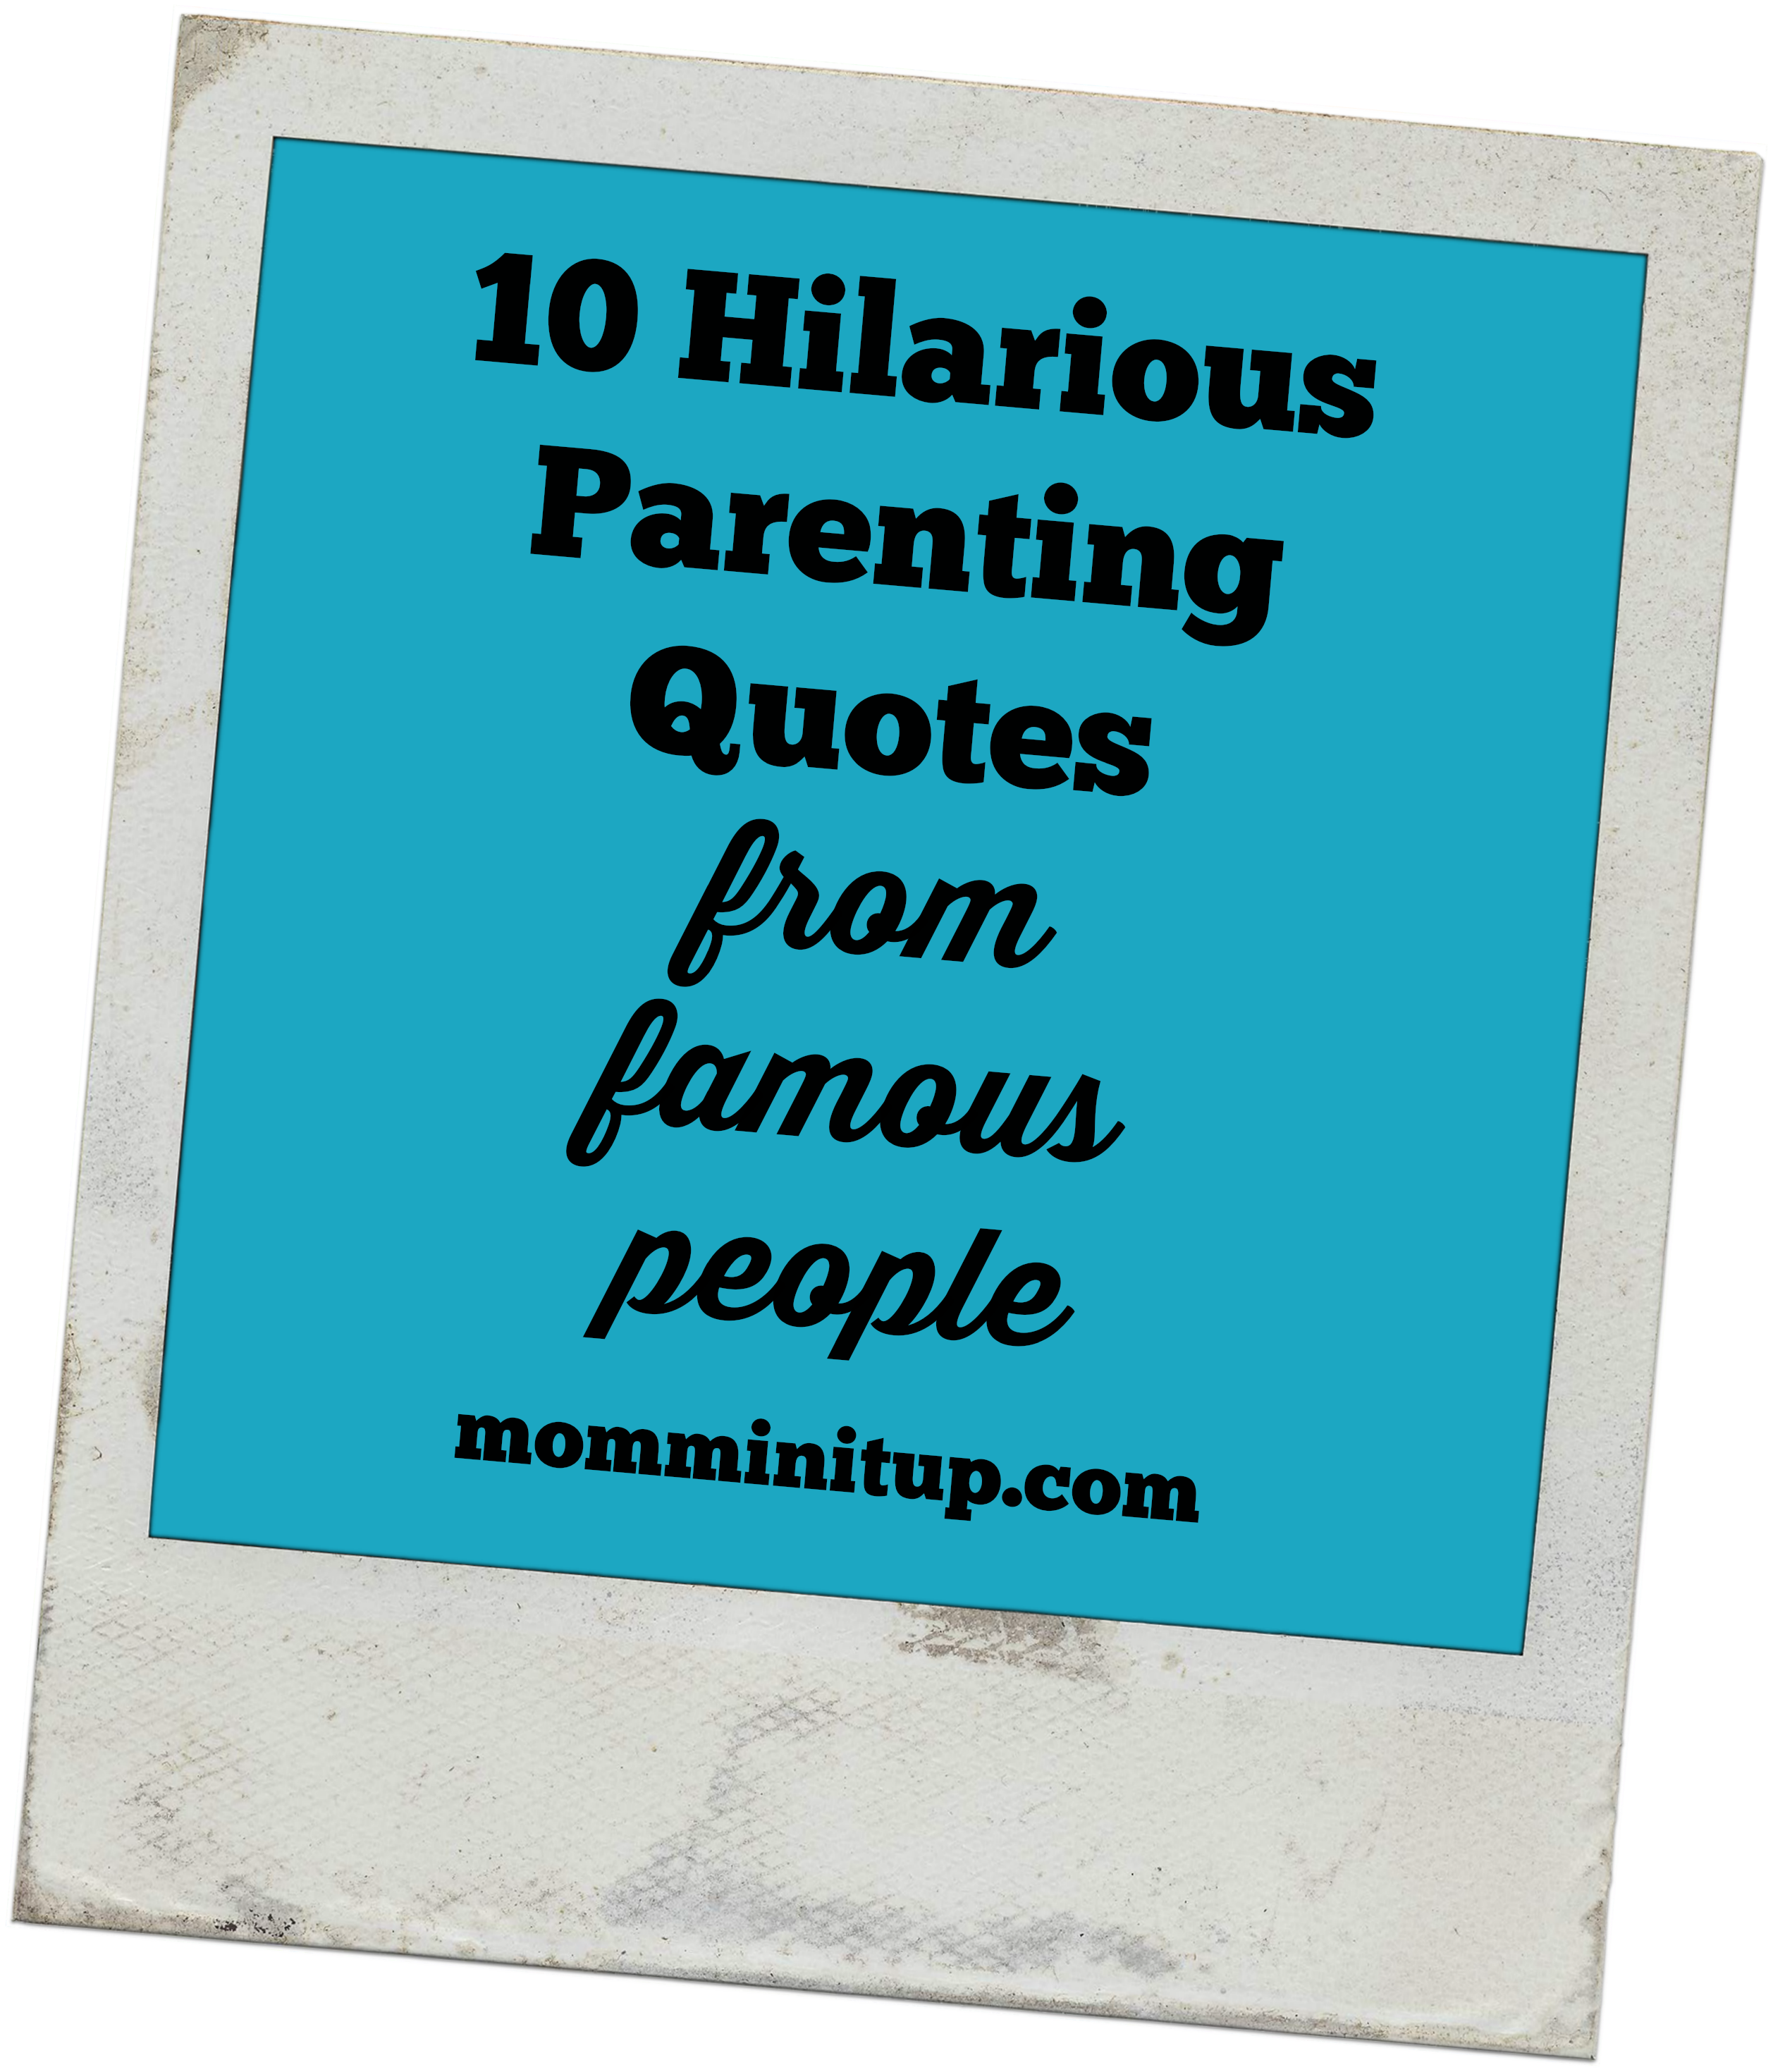 10 Hilarious Parenting Quotes From Famous People Parenting Quotes Parenting Advice Funny Parents Quotes Funny